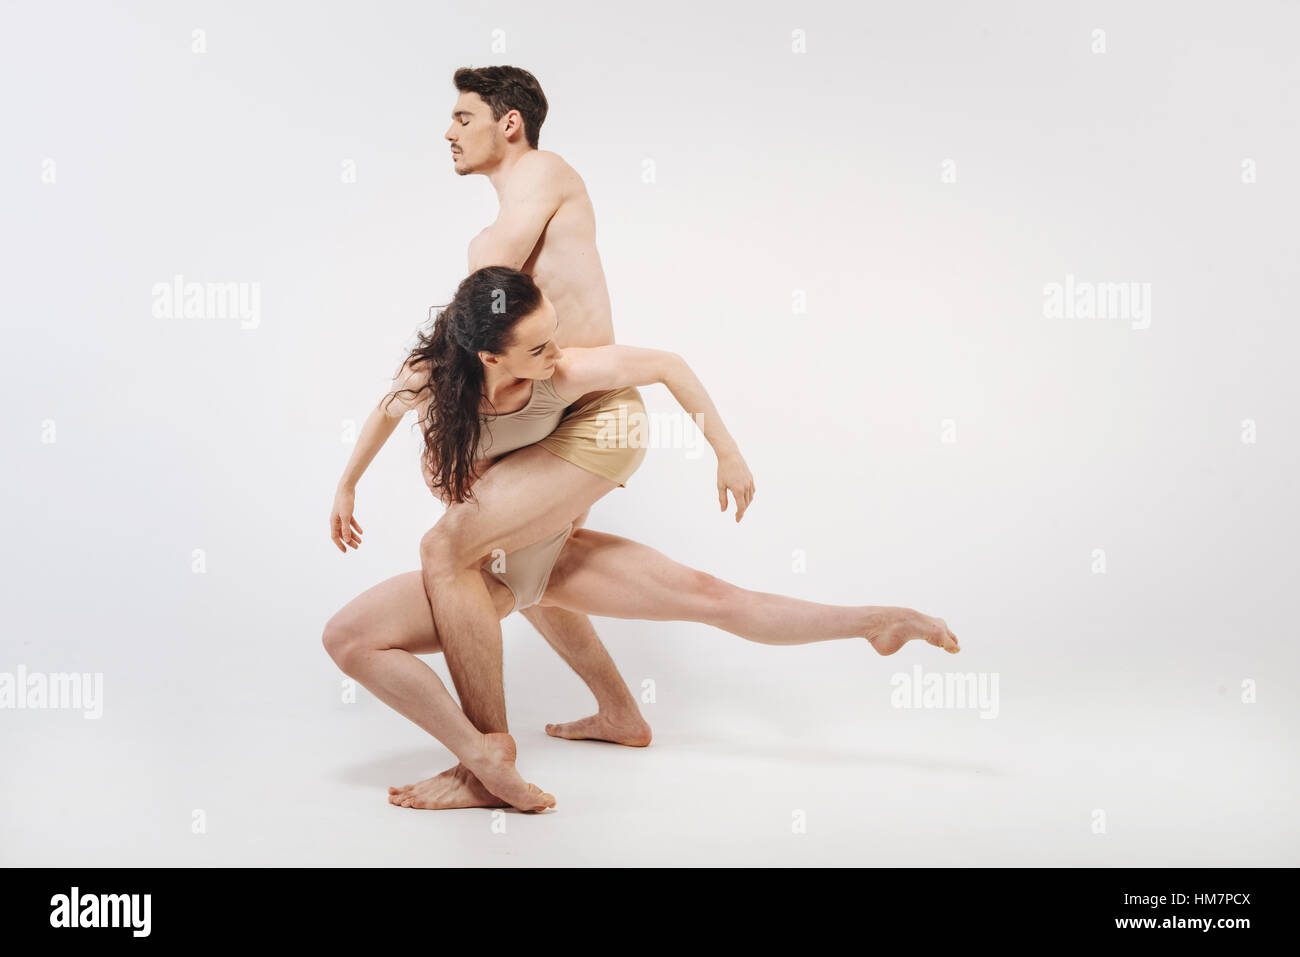 Attractive gymnasts showing their choreography in the studio - Stock Image